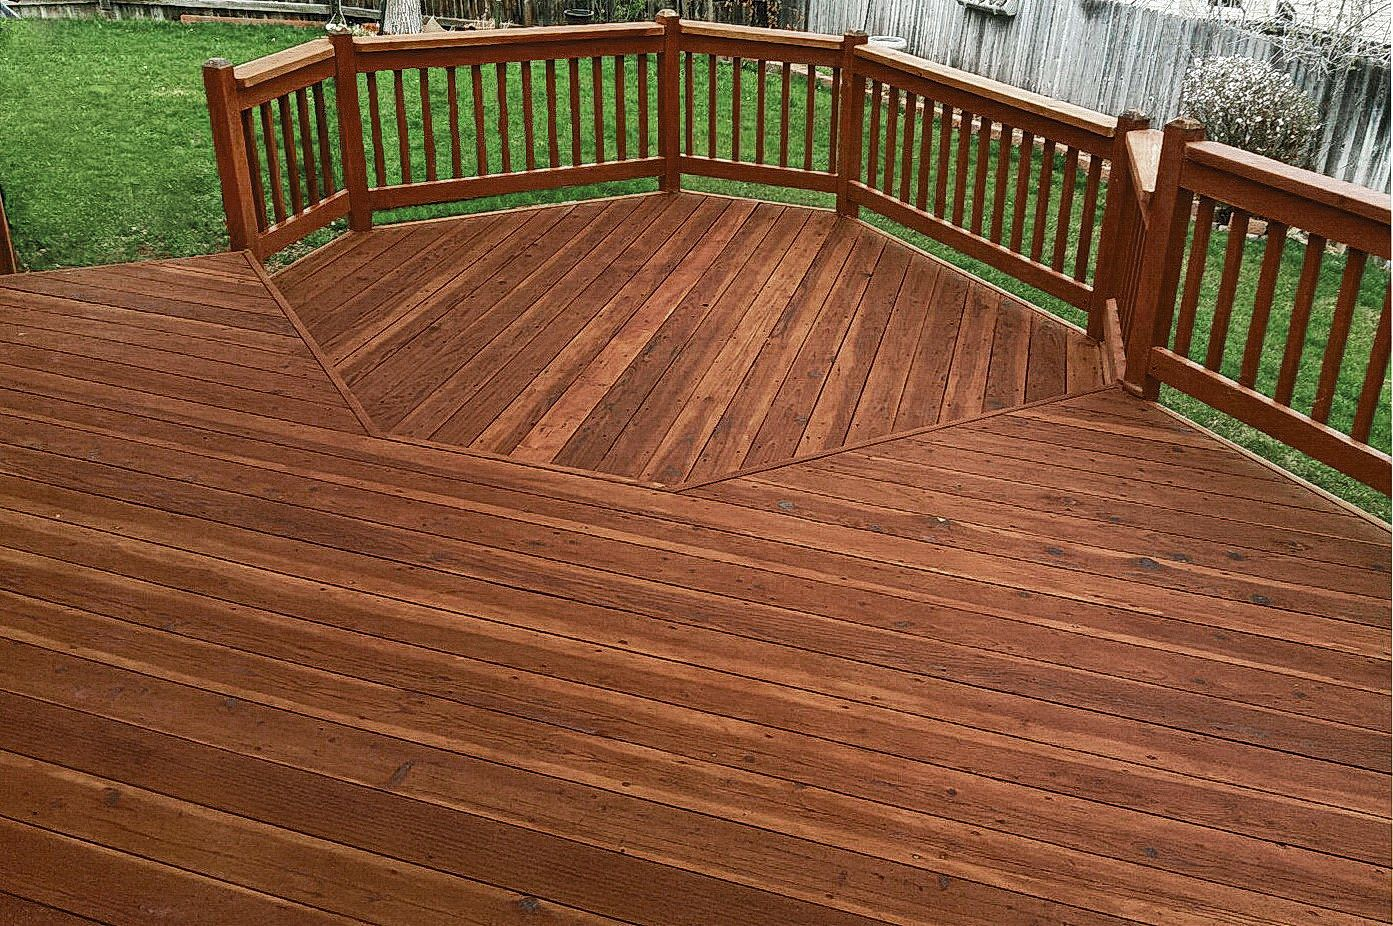 Rustic Color Stained Deck This Deck Was Fully Stripped Down And Warmer Darker Stain Was Used To Bring Out It S Natural Beauty Rustic Deck Staining Deck Deck